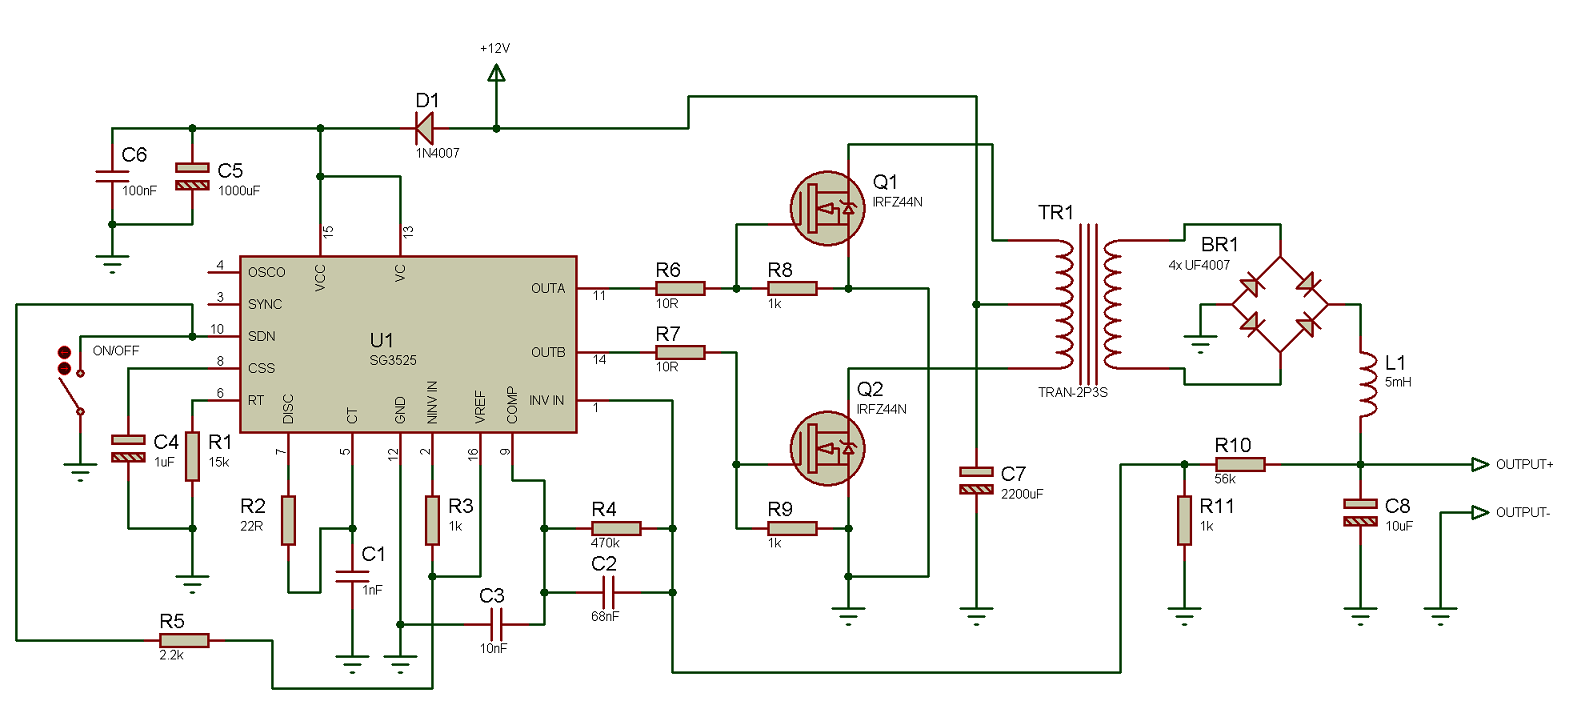 Tahmids Blog Using The Sg3525 Pwm Controller Explanation And Schematic To Show Motor Control Circuit A D Converter Lets Analyze It See What Ive Done